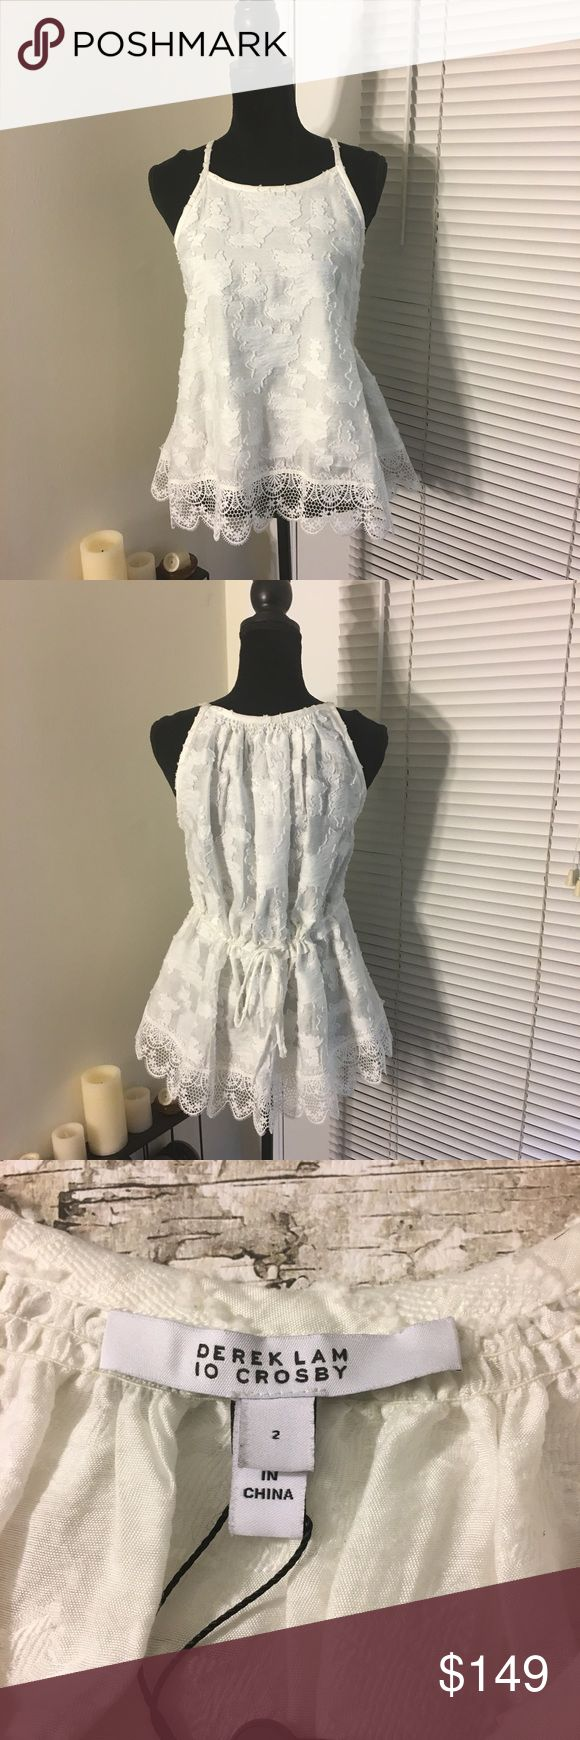 10 Crosby Derek Lam ivory lace tank top Ivory lace tank top from 10 Crosby Derek Lam. Embroidery throughout with thick lace hem. Functional tie detail adjusts the size and fit of the tank. Pullover style. Please verify measurements as this tank looks to be a little oversized 😊 10 Crosby Derek Lam Tops